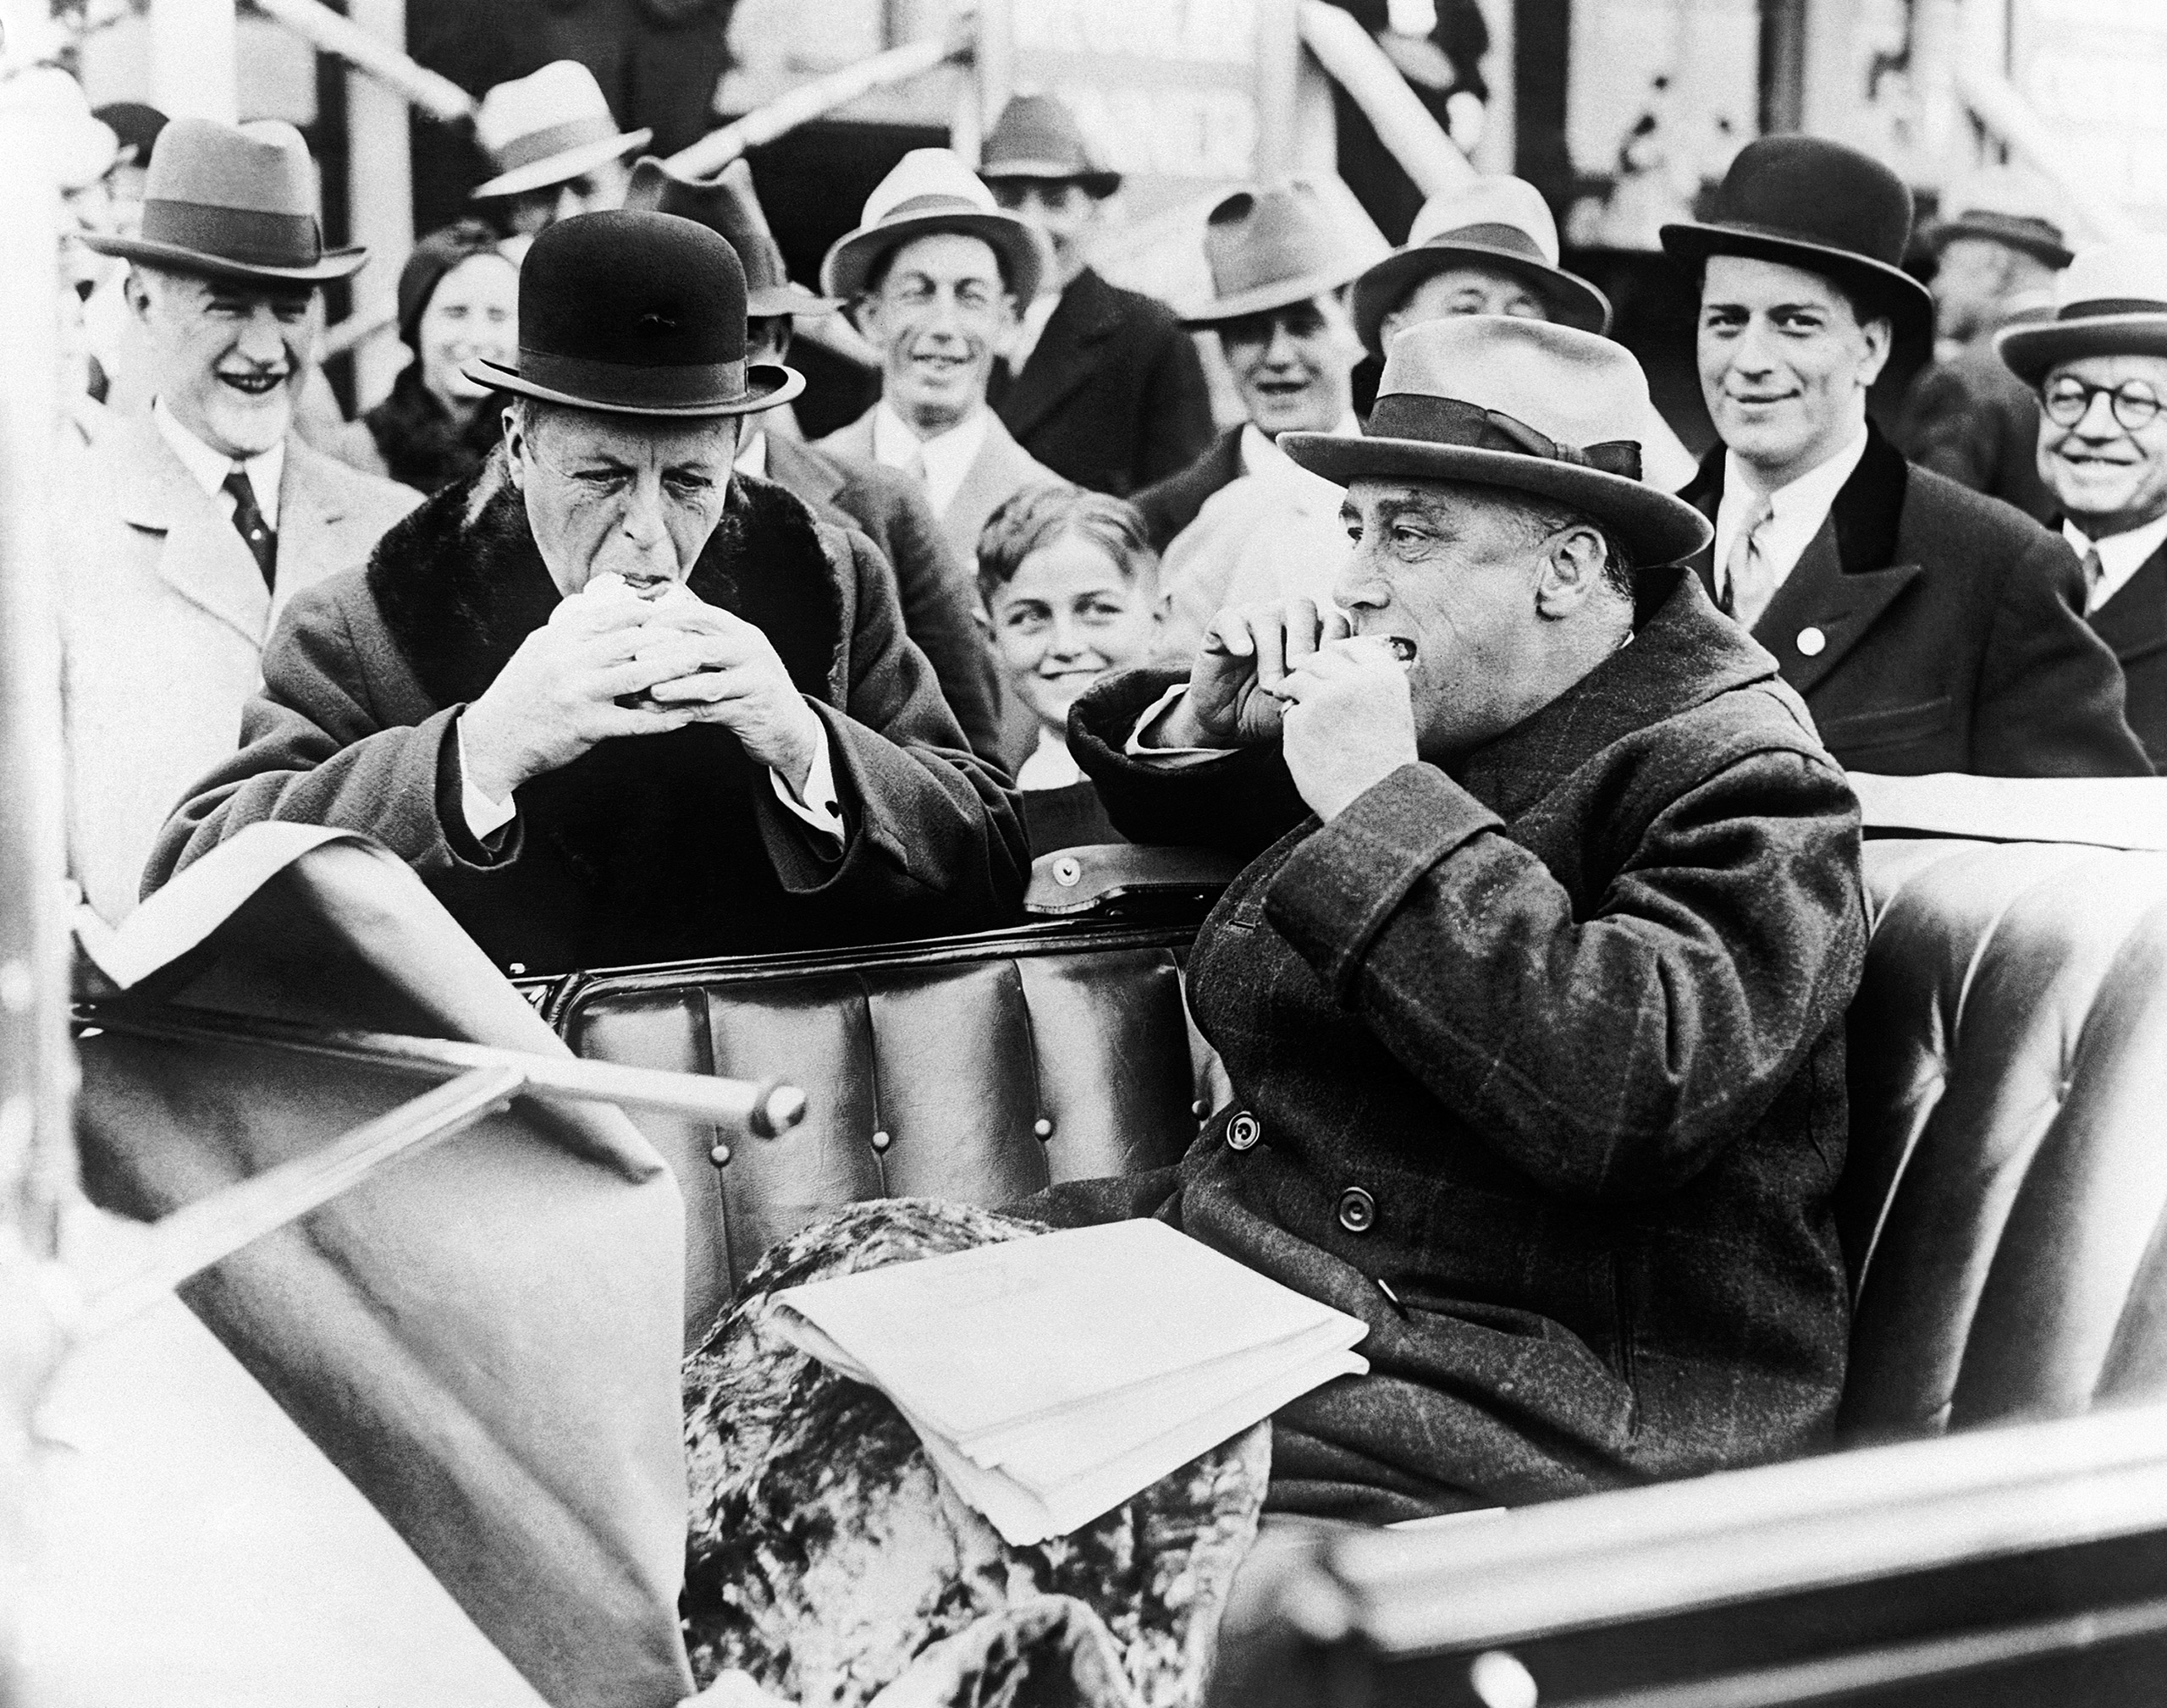 Gov. Joseph Ely of Massachusetts, left, candidate for re-election, and Gov. Franklin D. Roosevelt of New York, stop for a hot dog on the Mohawk Trail in Massachusetts, Oct. 30, 1932, where they are campaigning together.